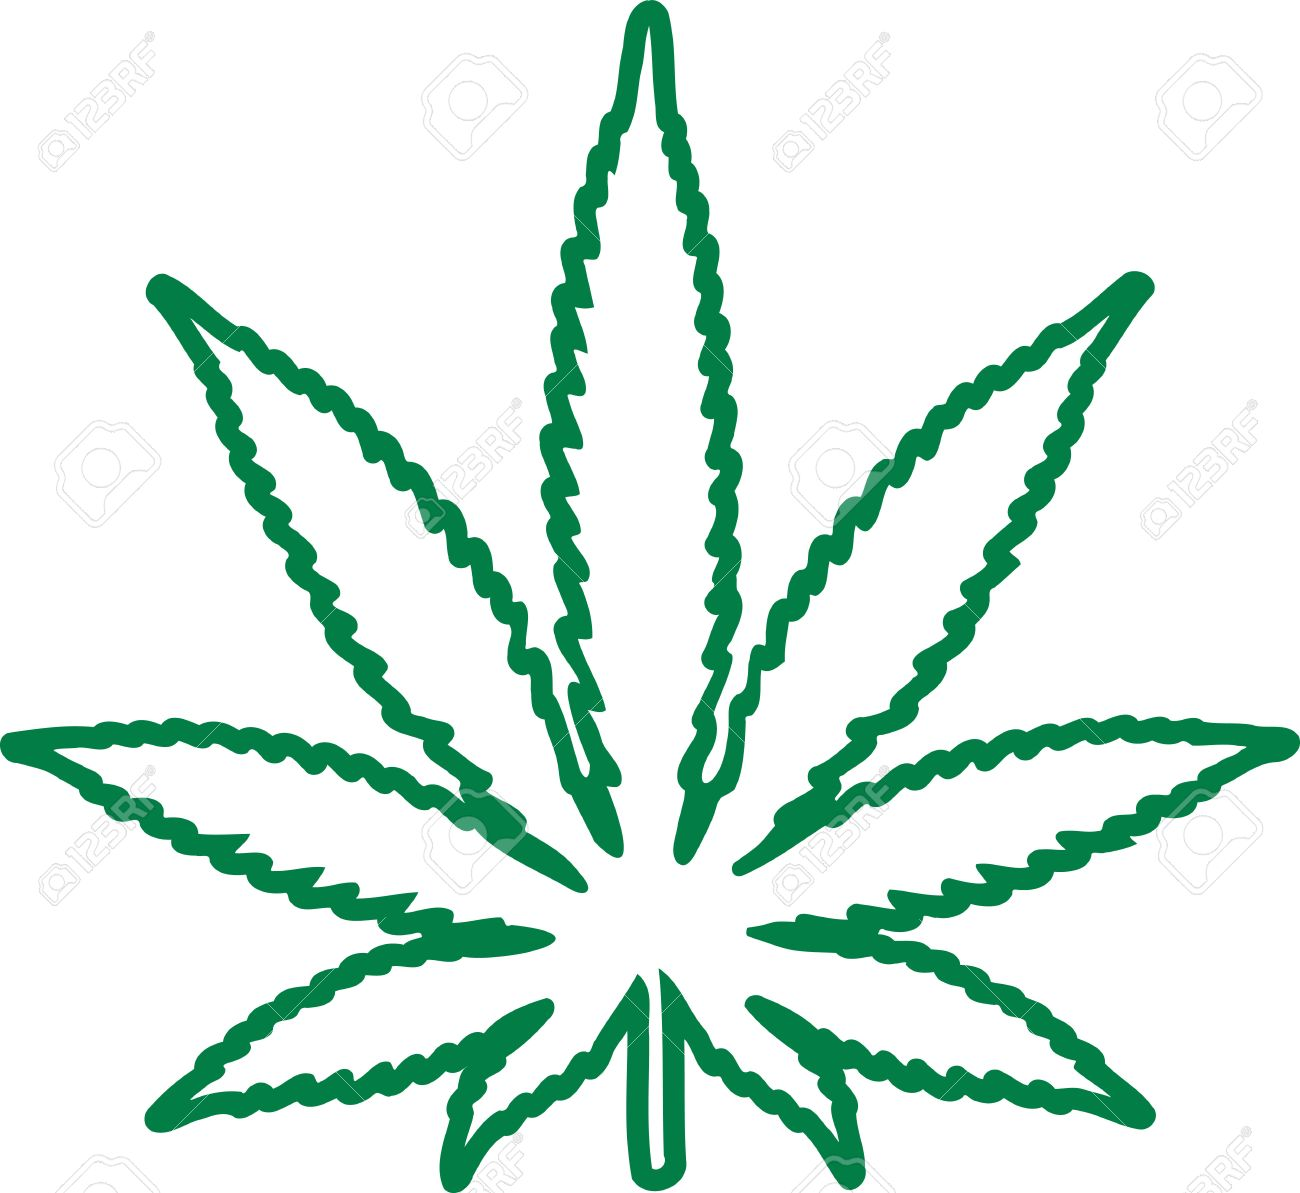 marijuana leaf outline royalty free cliparts vectors and stock rh 123rf com pot leaf vector free pot leaf logo vector